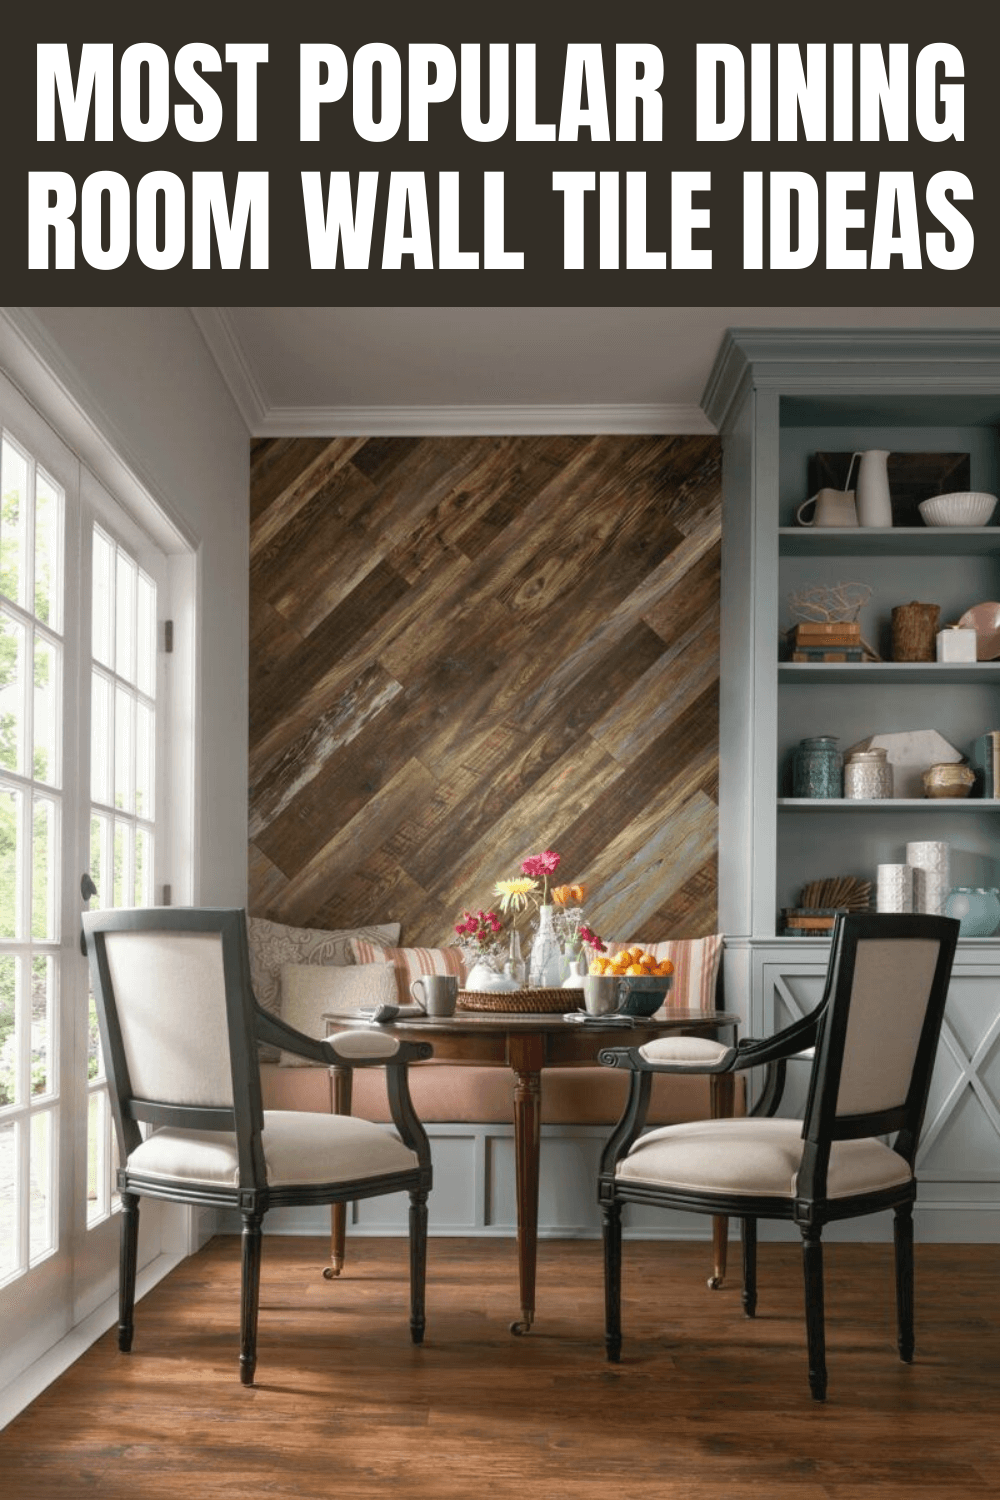 Most Popular Dining Room Wall Tile Ideas